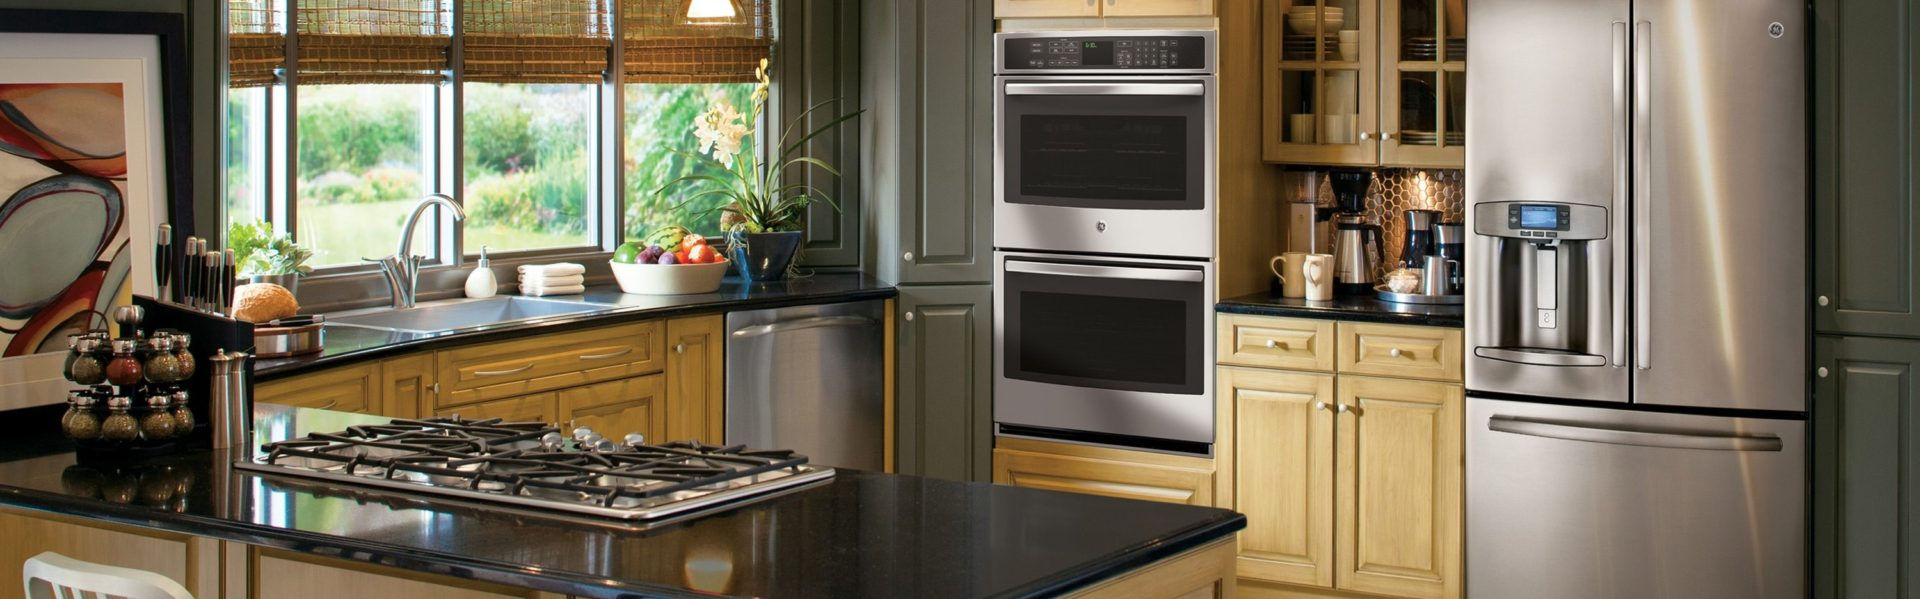 Rancho Cordova Appliance Repair